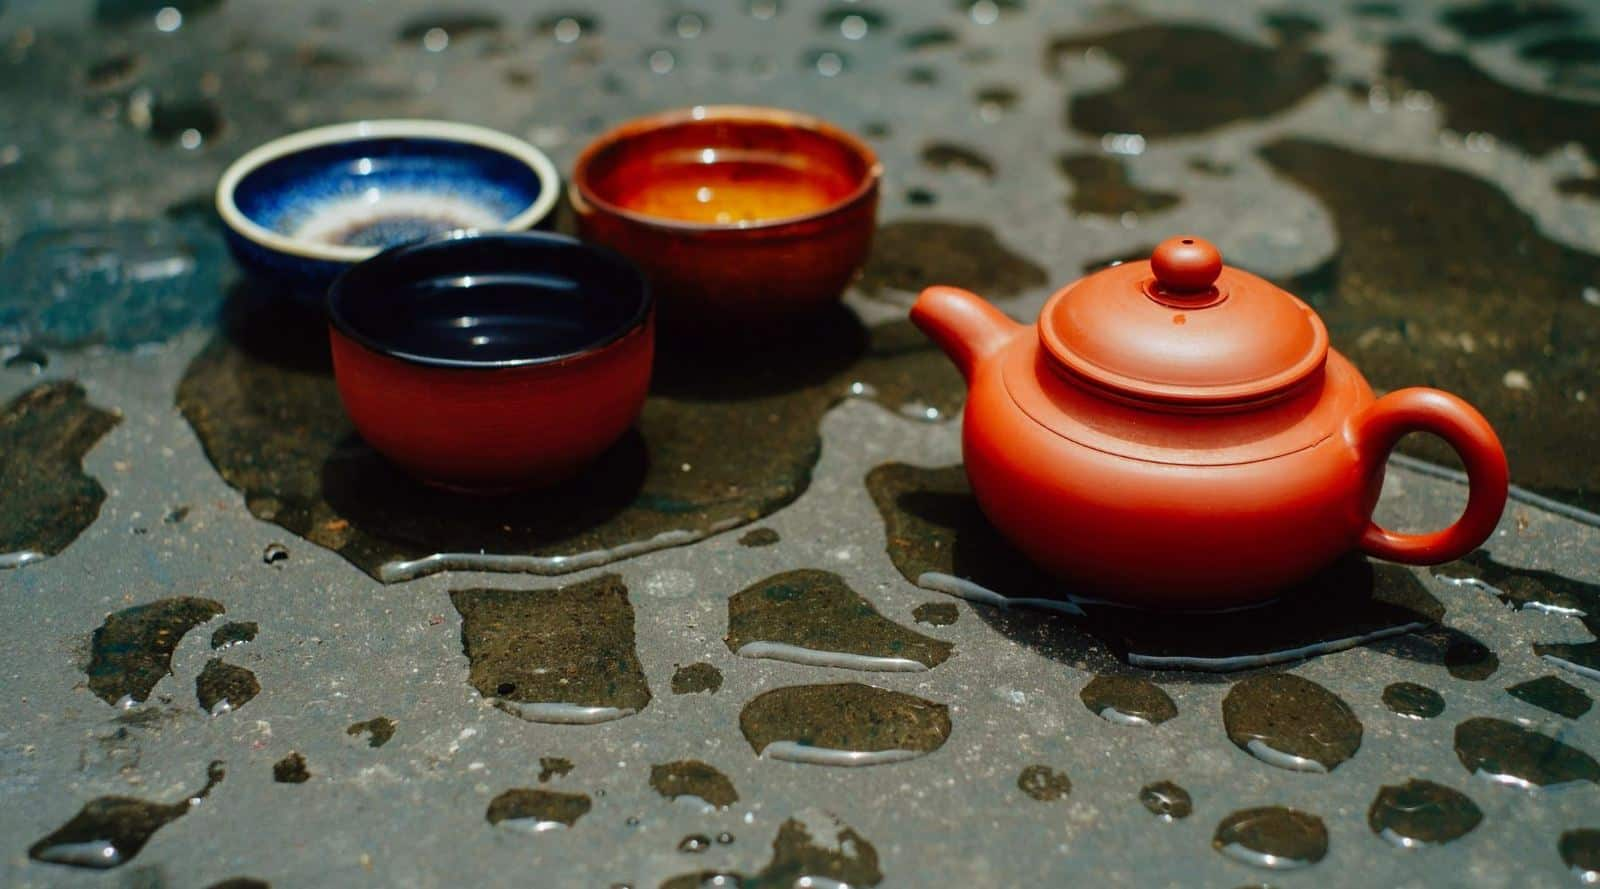 why chinese yixing teapots are so small?